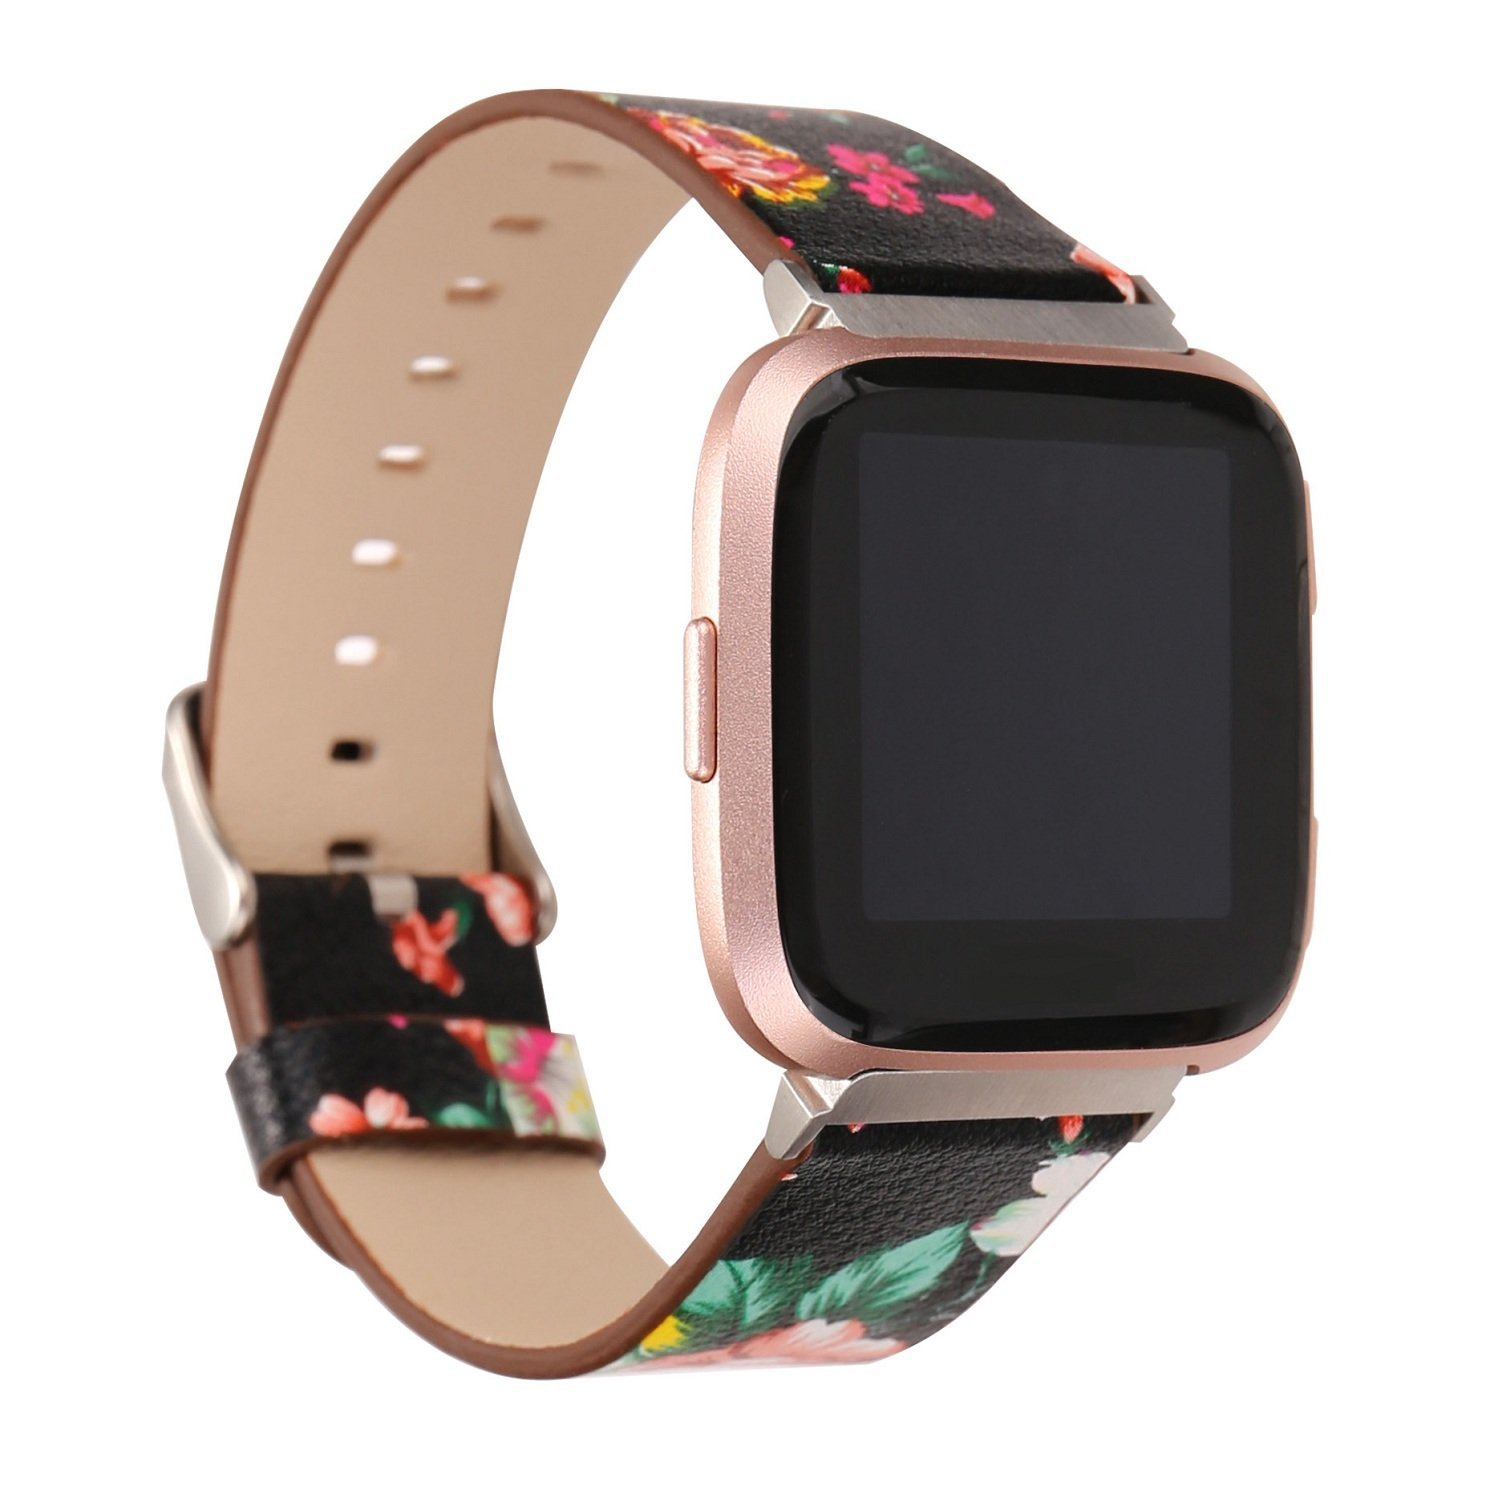 Juzzhou Smart Watch Band For Fitbit Versa Watchband Wriststrap Leather Motley Flower Bracelet Replacement Wrist Strap Wristband With Metal Adapter Adjustable Buckle Clasp For Woman Lady Girl Black by Juzzhou (Image #3)